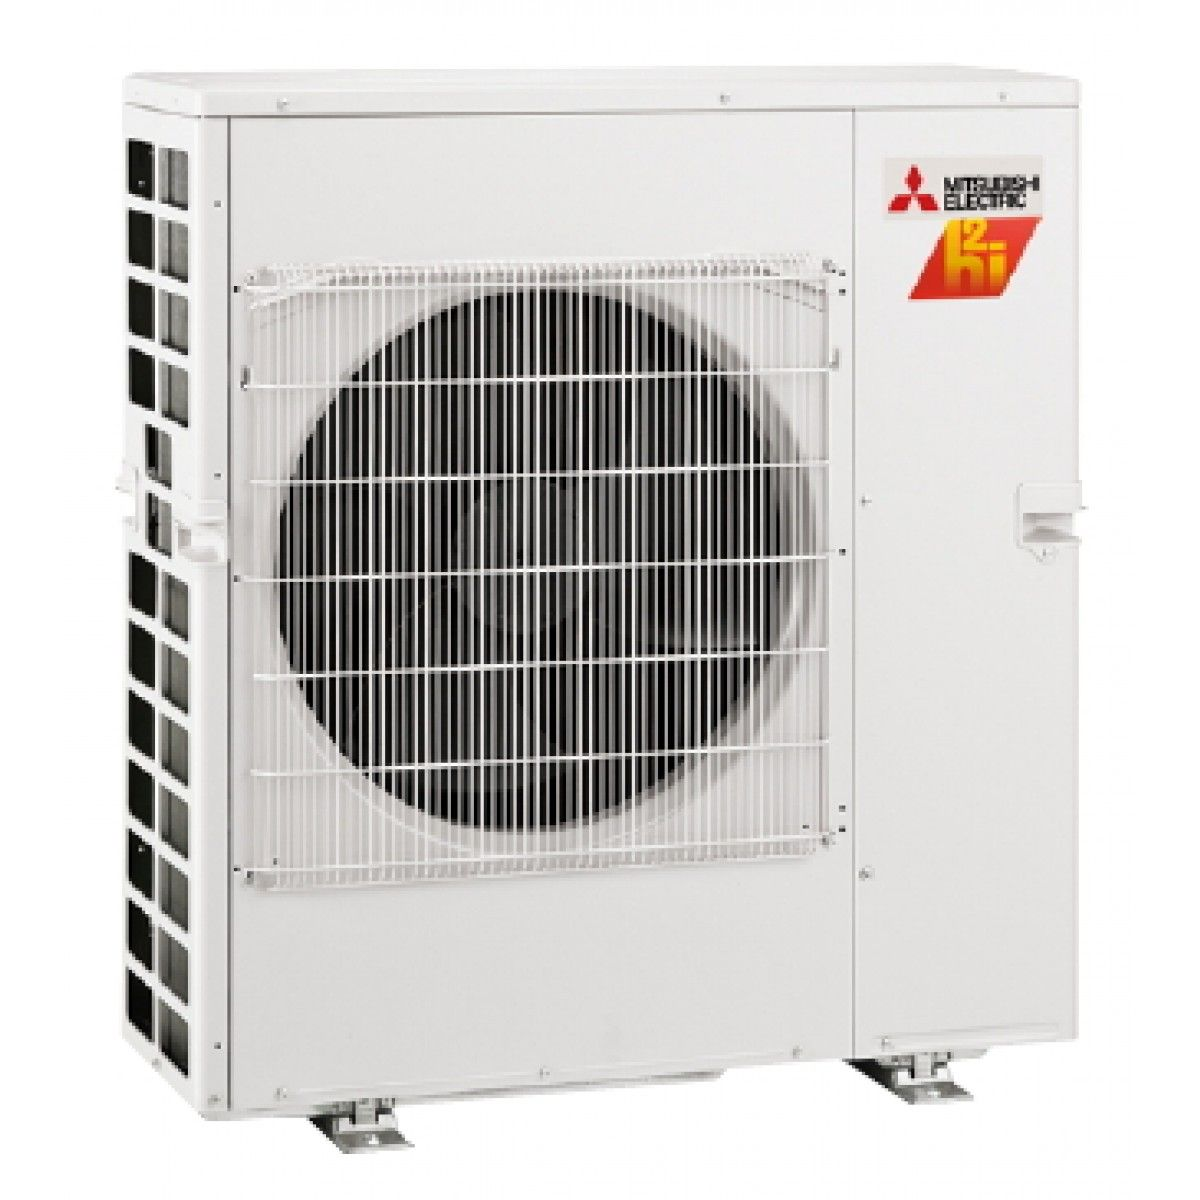 Mitsubishi 2 Zone 20k Btu Heat Pump Hyper Heat With Two